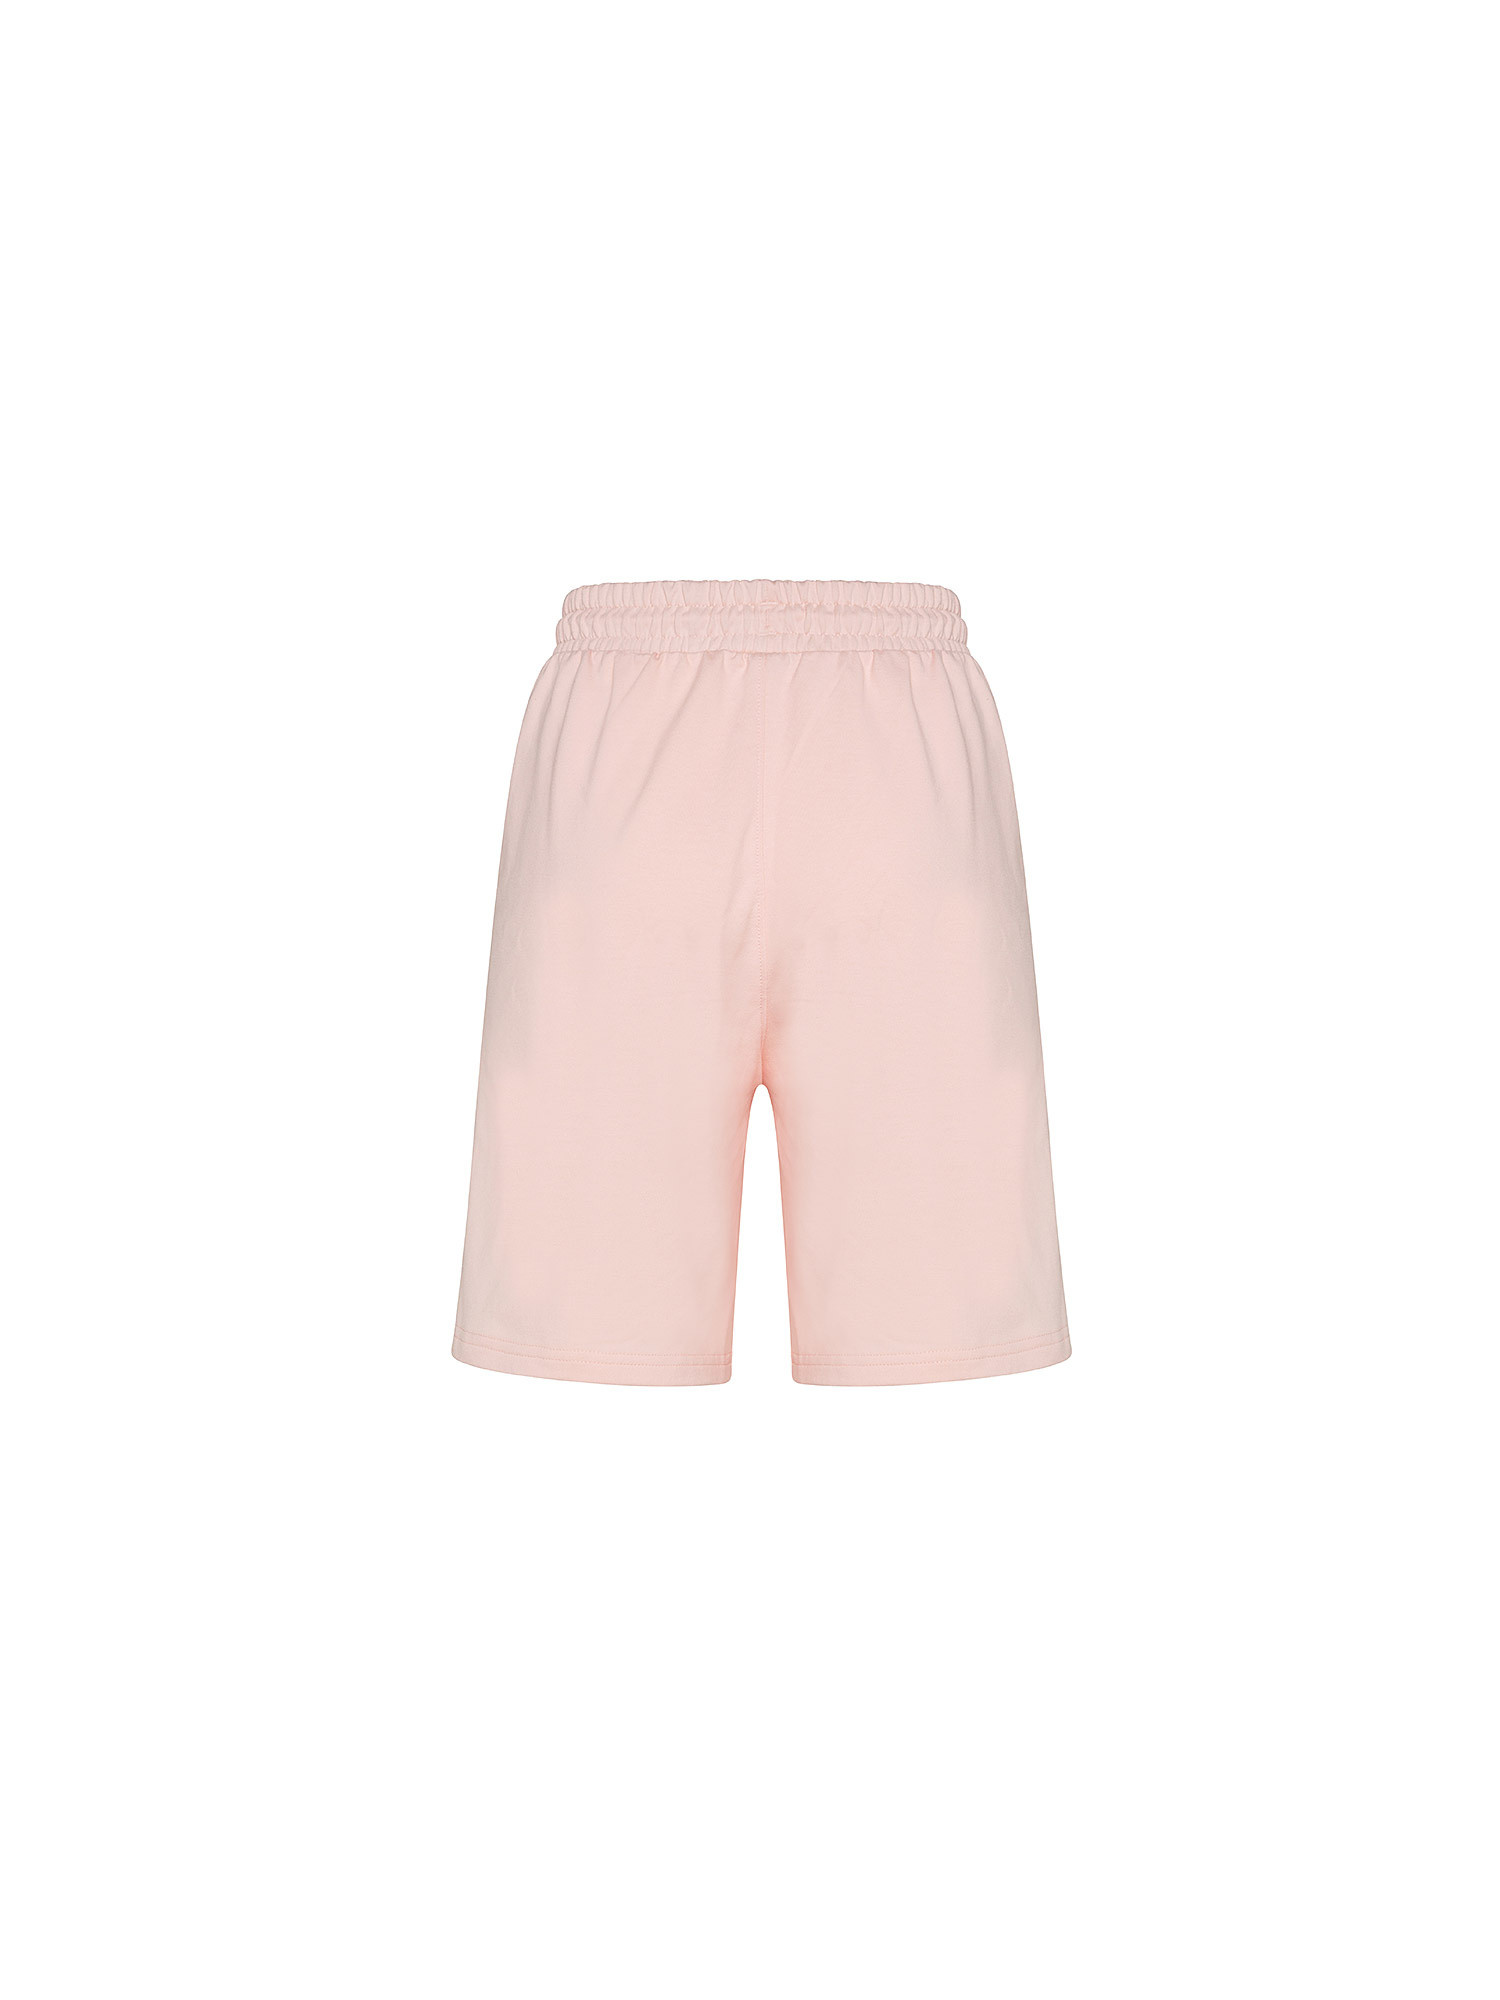 Knitted Shorts, Rosa, large image number 1